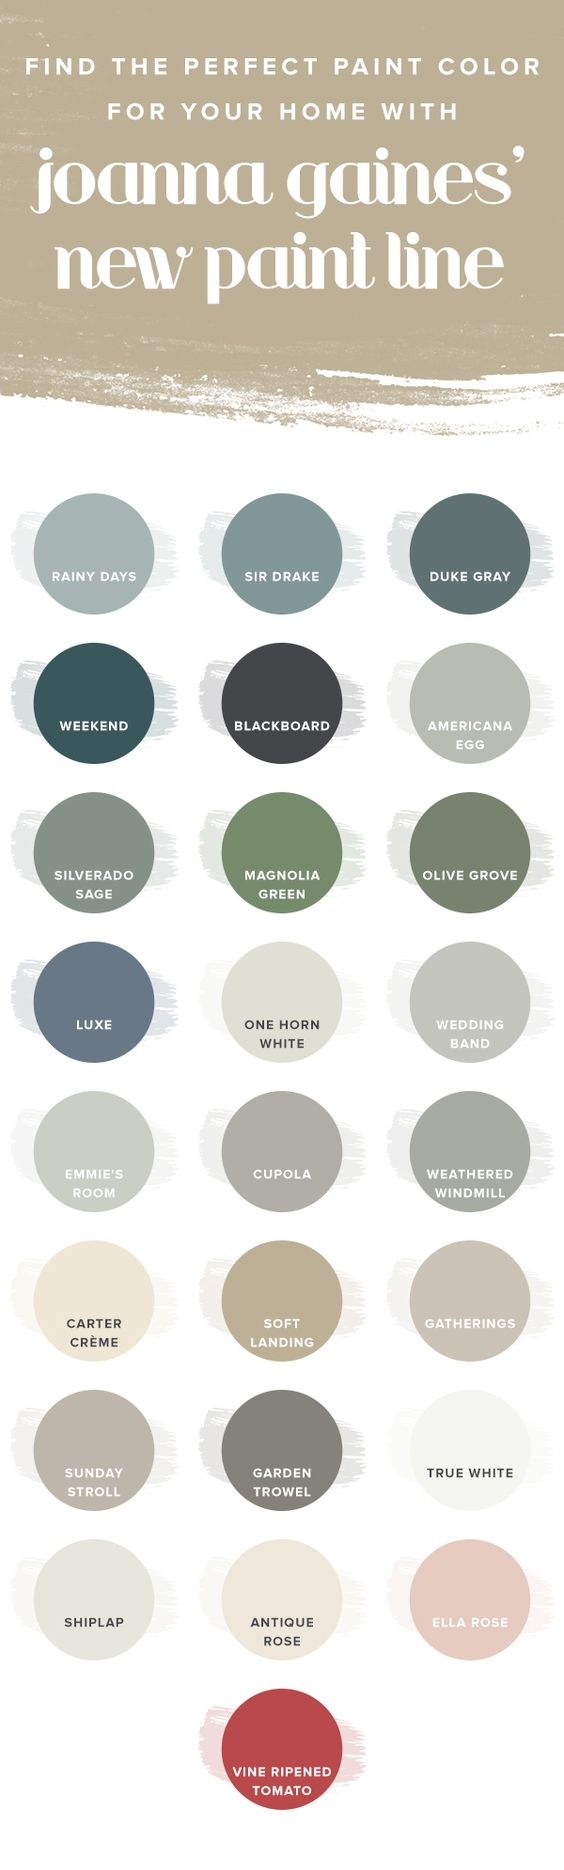 A fresh coat of paint might just be the secret to instantly making your home feel refreshed. @Joanna Gaines has a new paint line with beautiful color ideas for your home. From the living room to the bedroom to the exterior, take a look for some paint color ideas and inspiration.